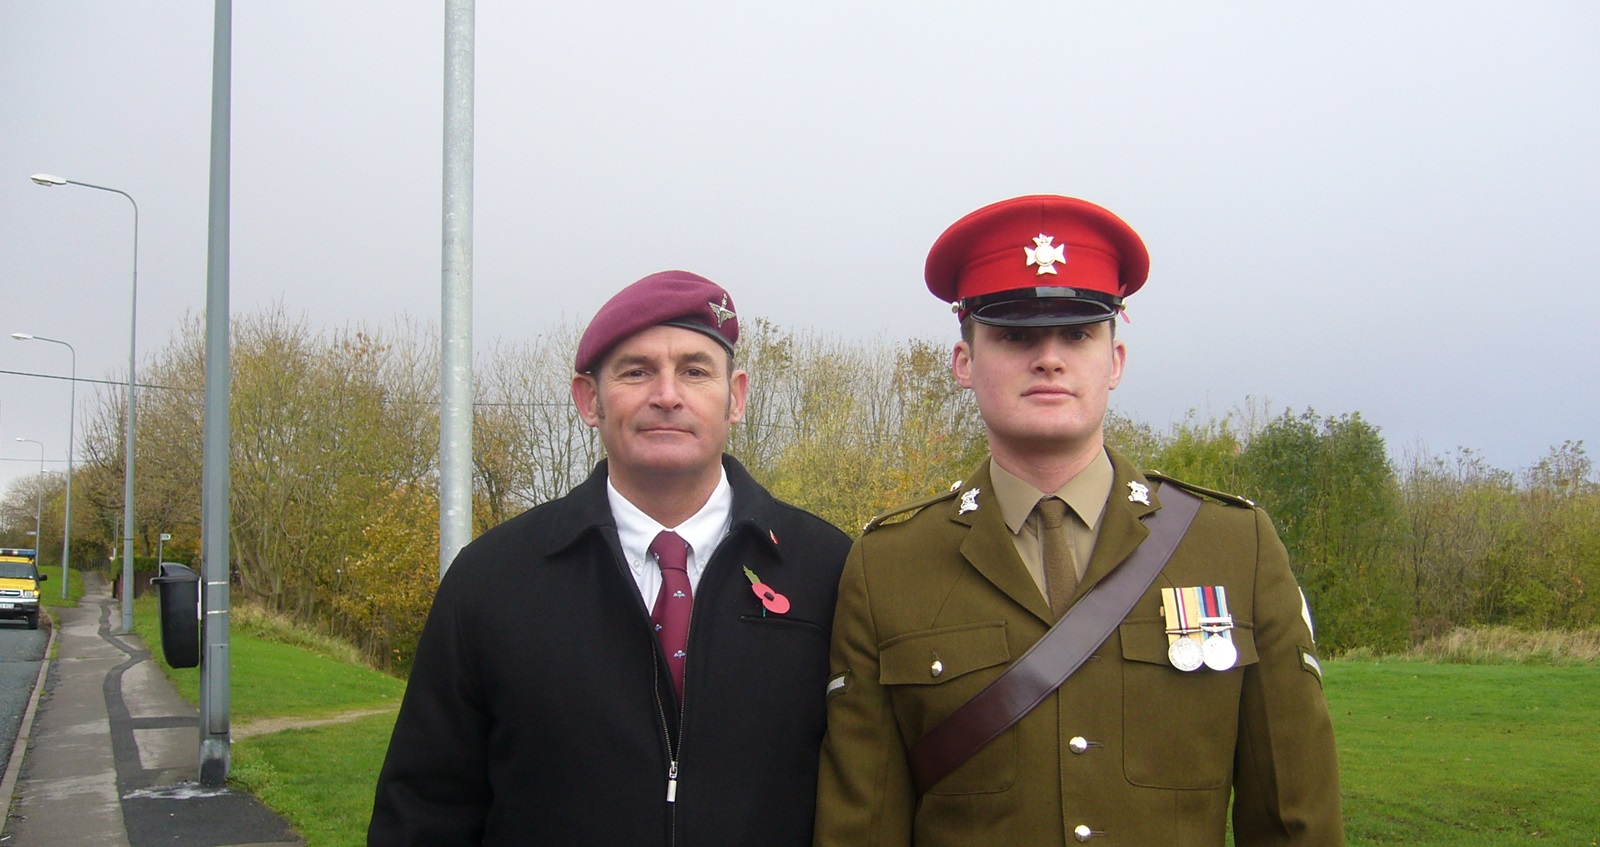 Liam and his father at Remembrance Sunday in Seaham Harbour